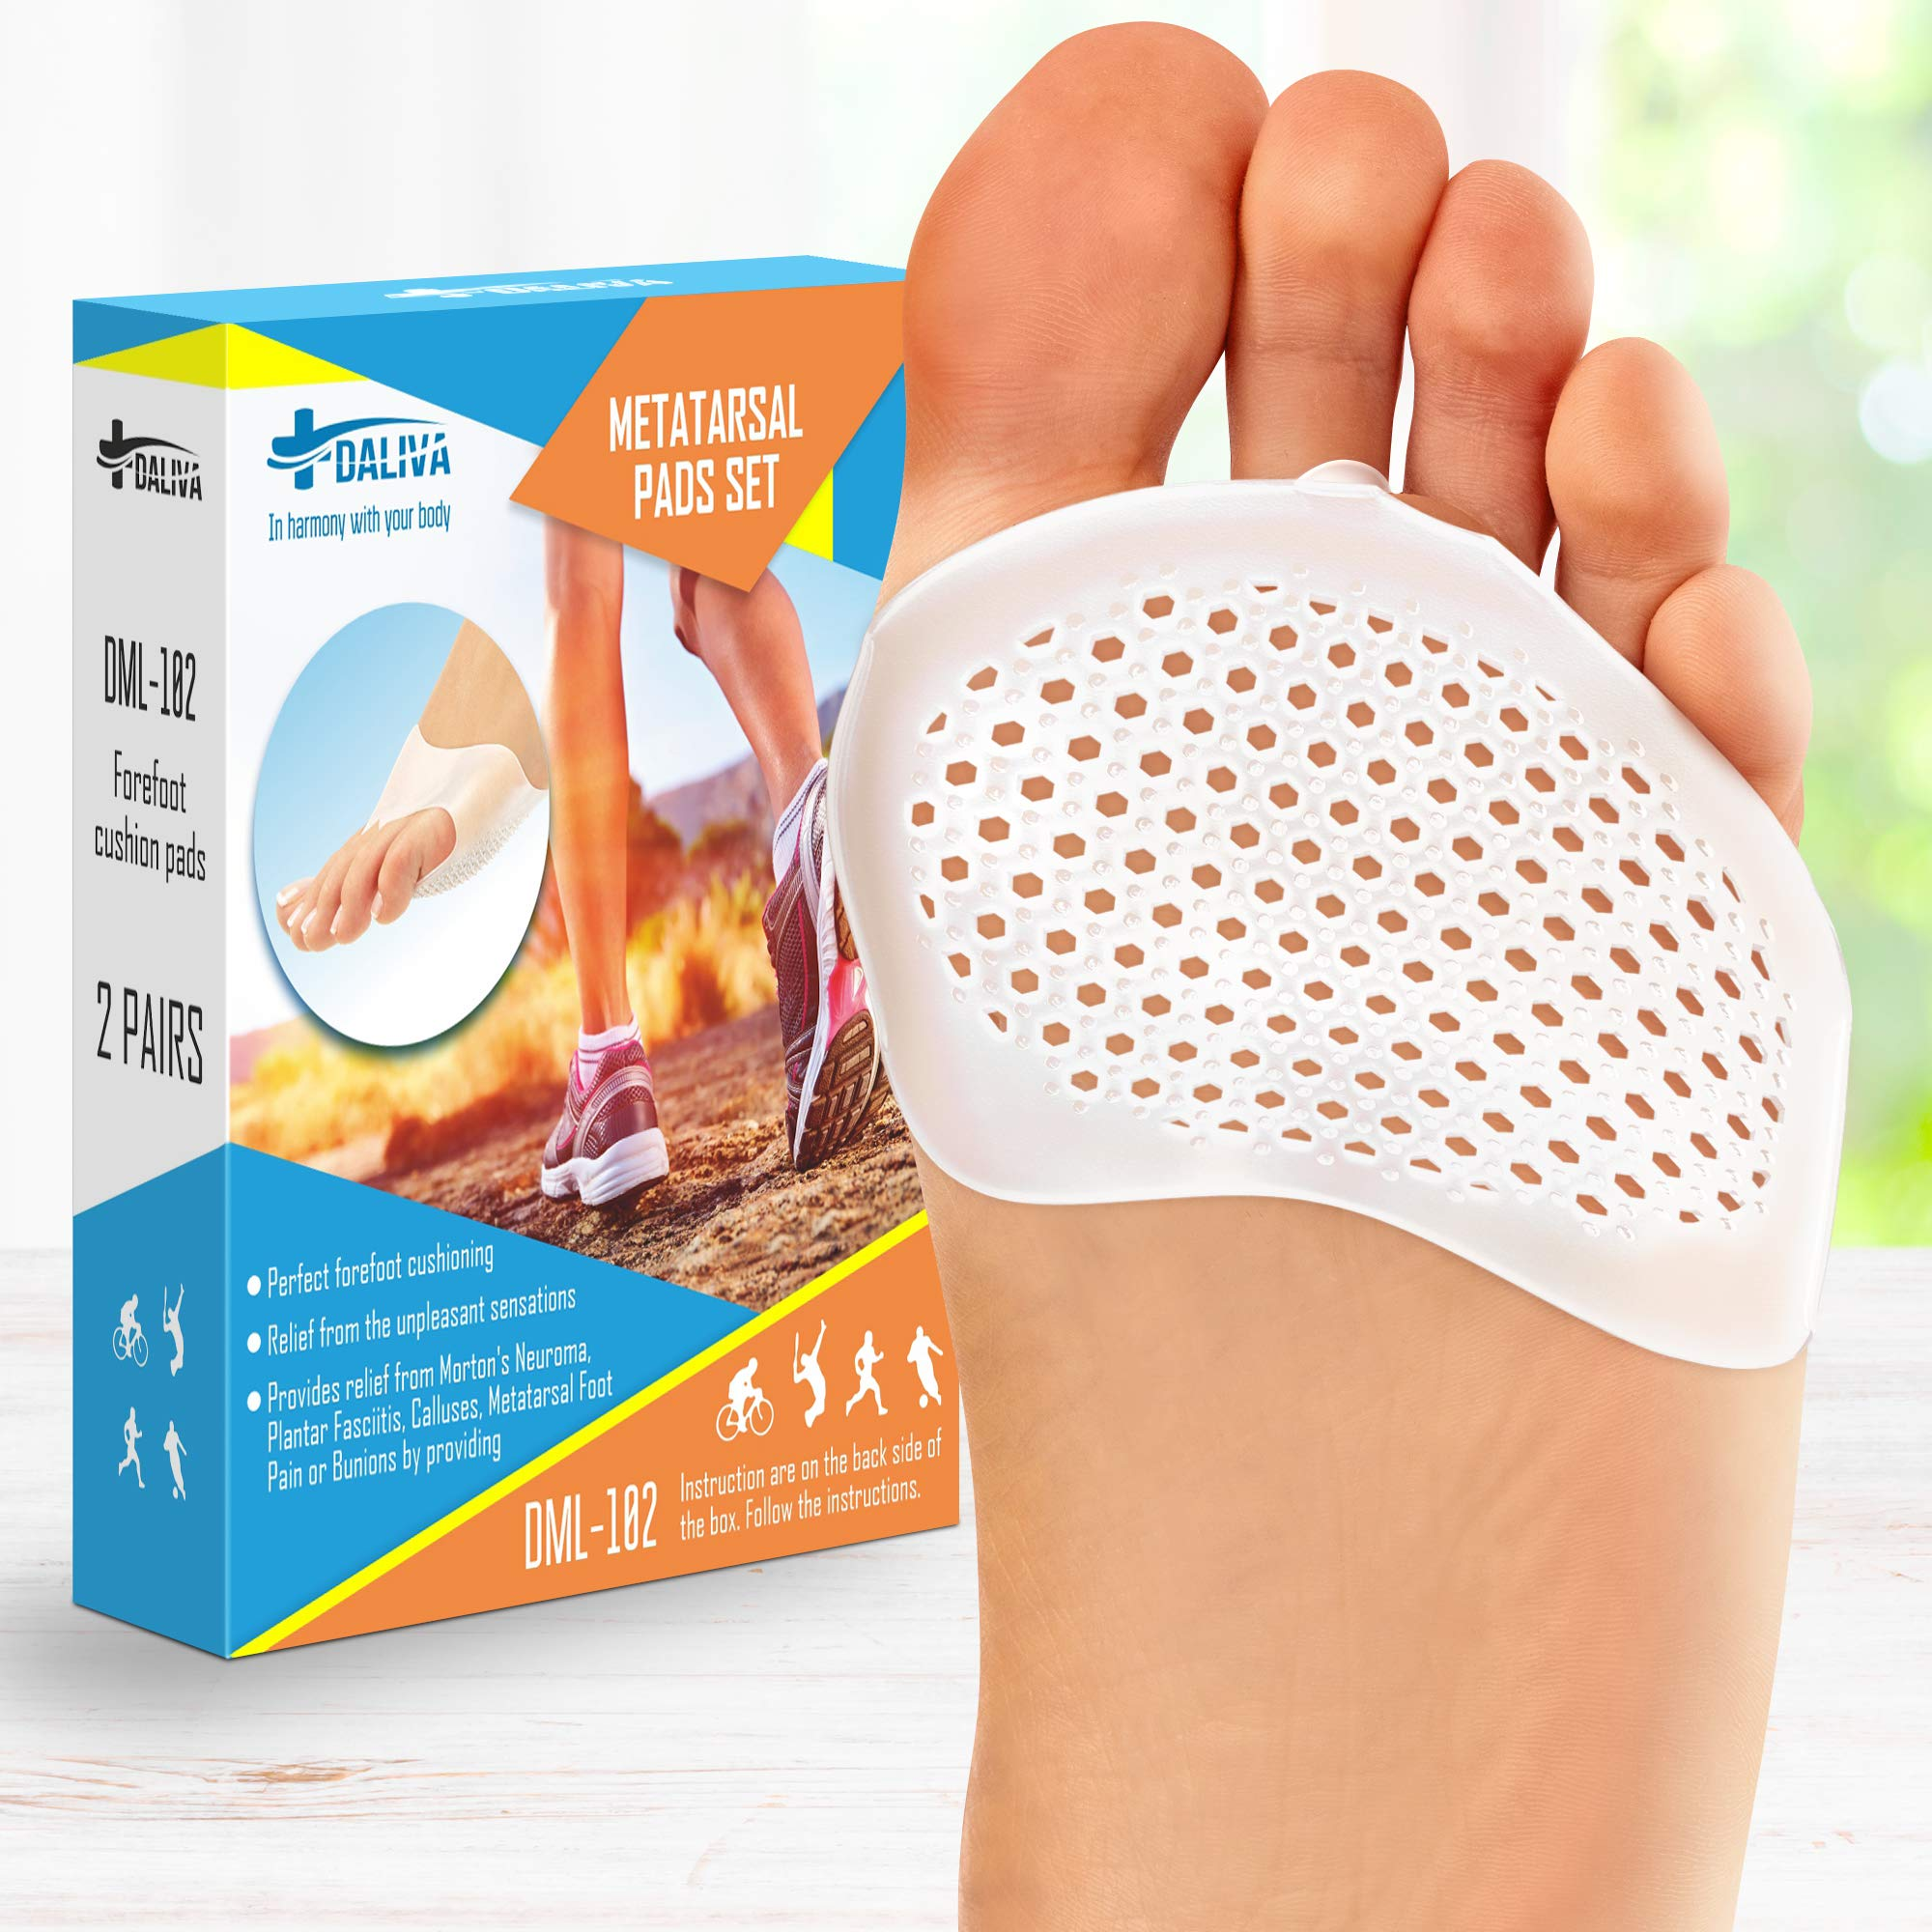 Ball of Foot Cushions (2 Pairs) - Metatarsal Pads | Soft Gel Forefoot Pads - Foot Sleeve with Soft Gel Sole - Mortons Neuroma - Prevent Pain